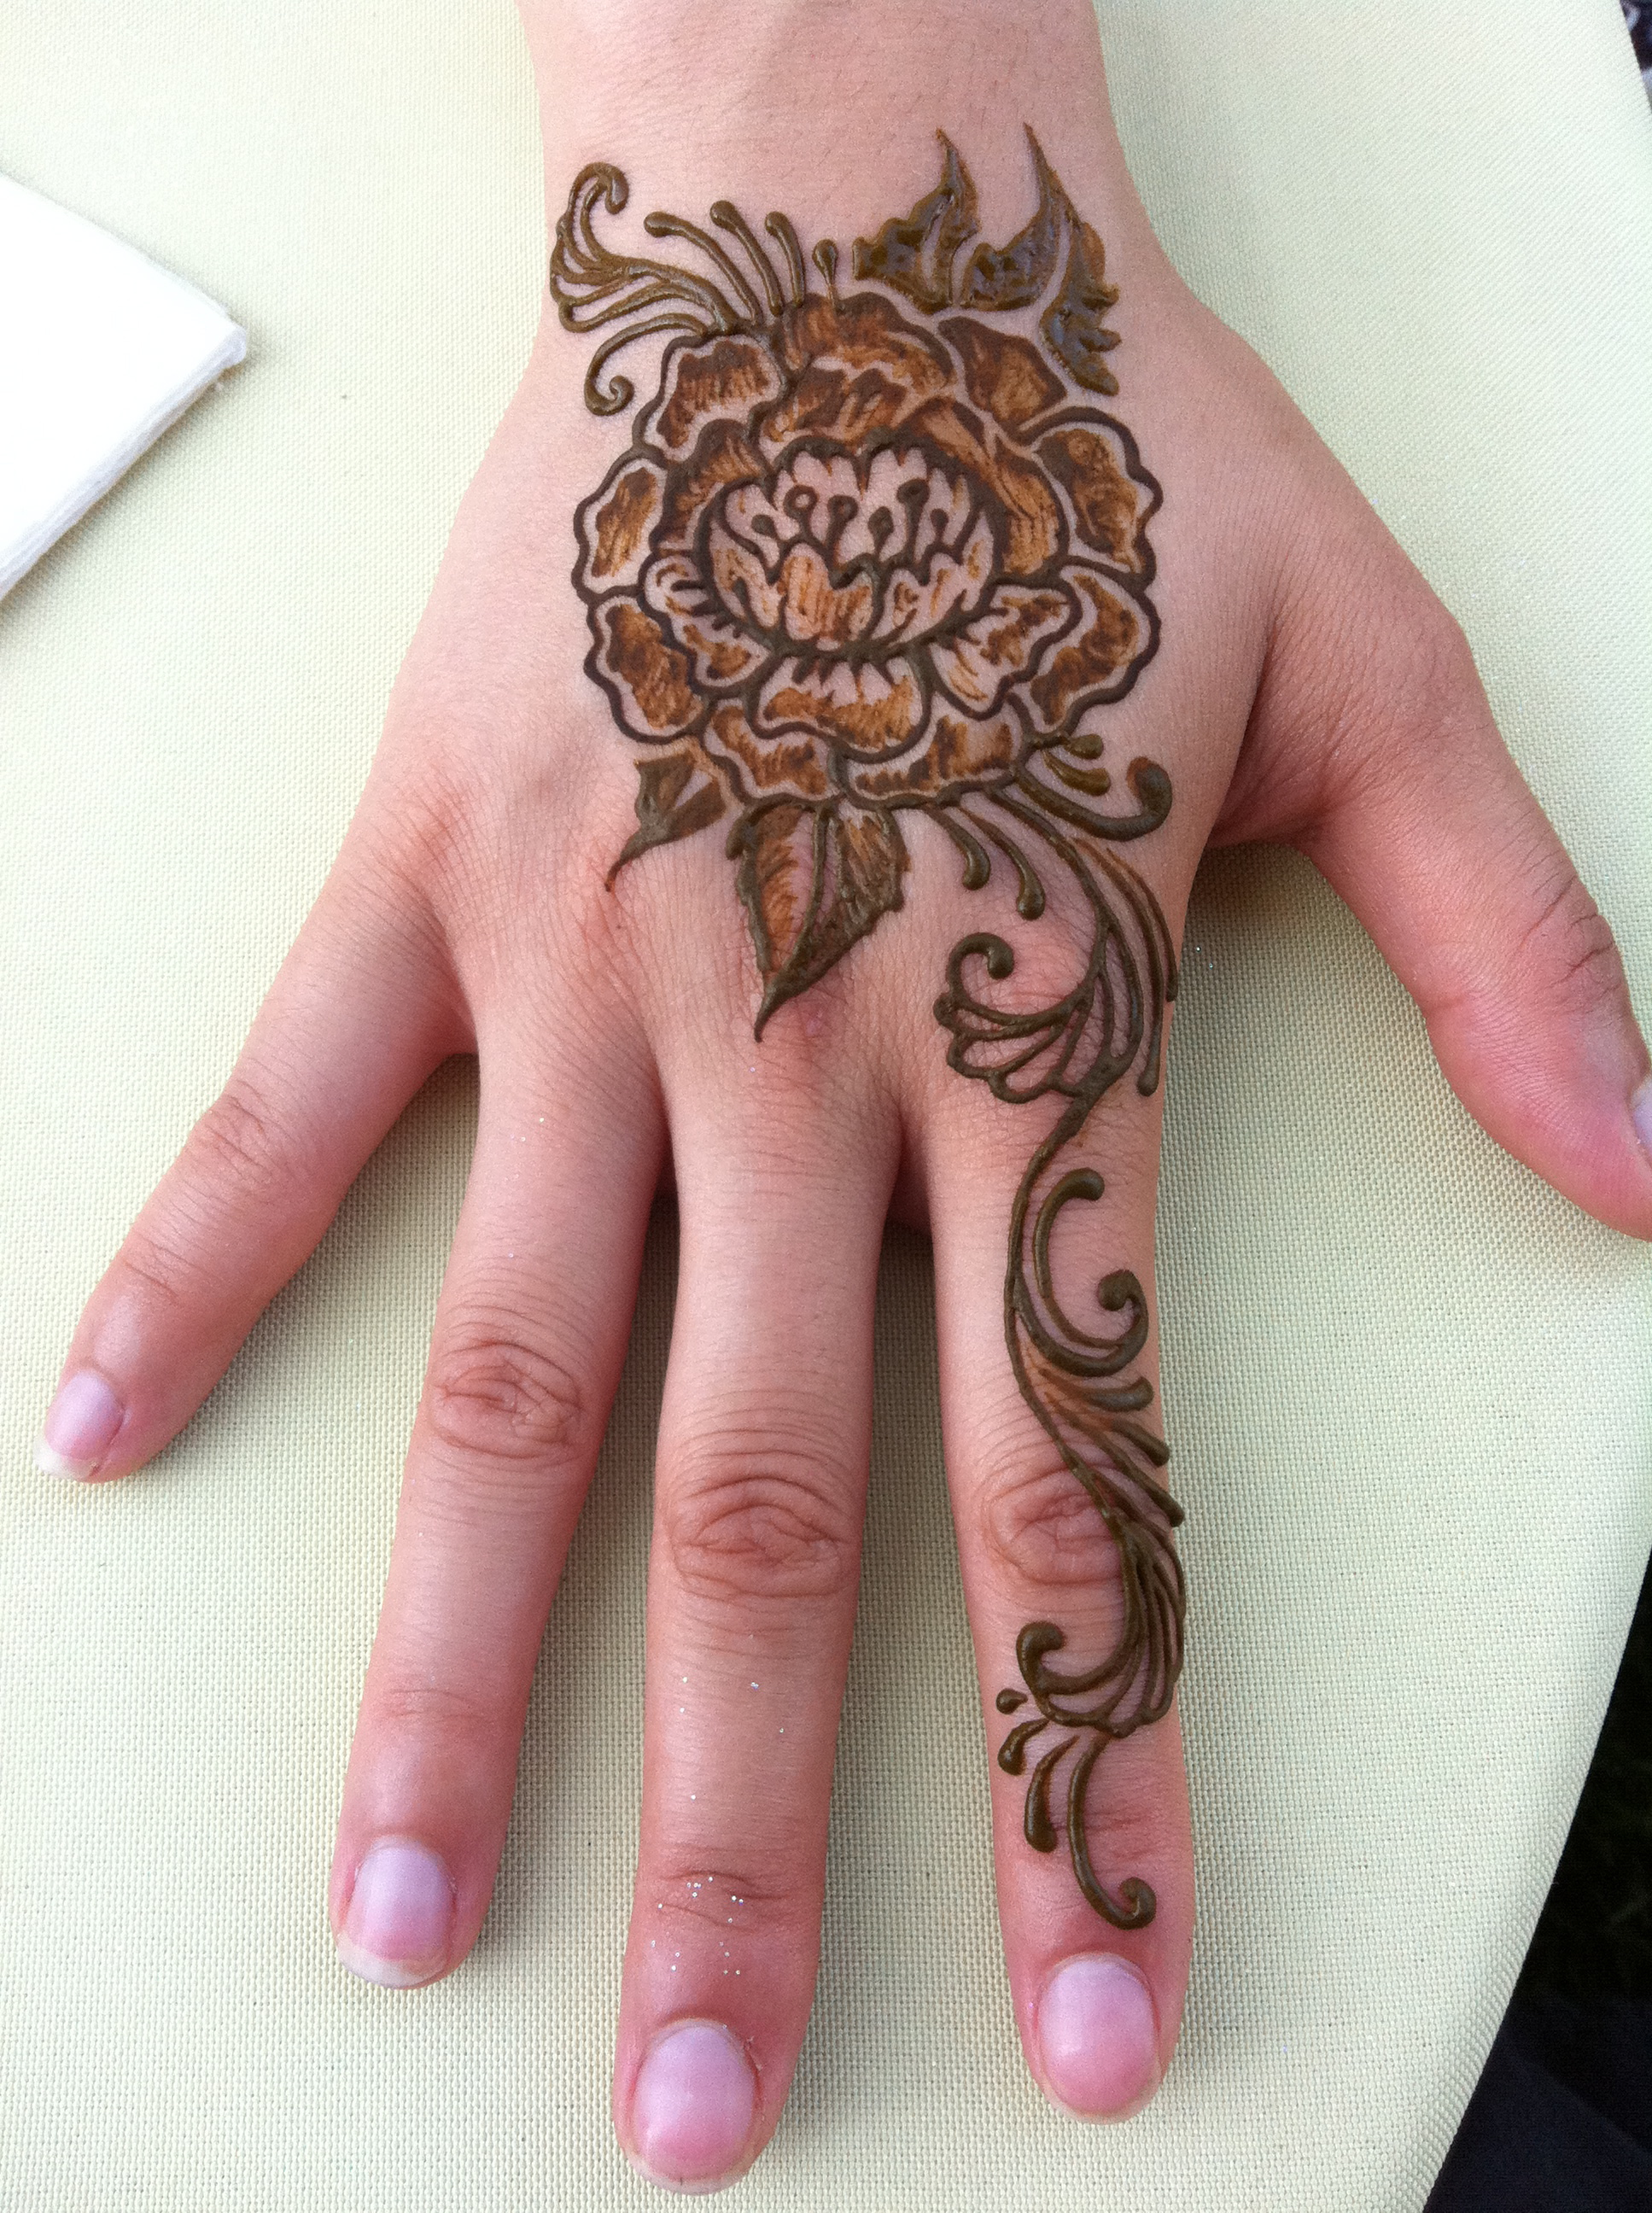 Henna Tattoos Chicago Area Face Painting Henna Ideas And Designs